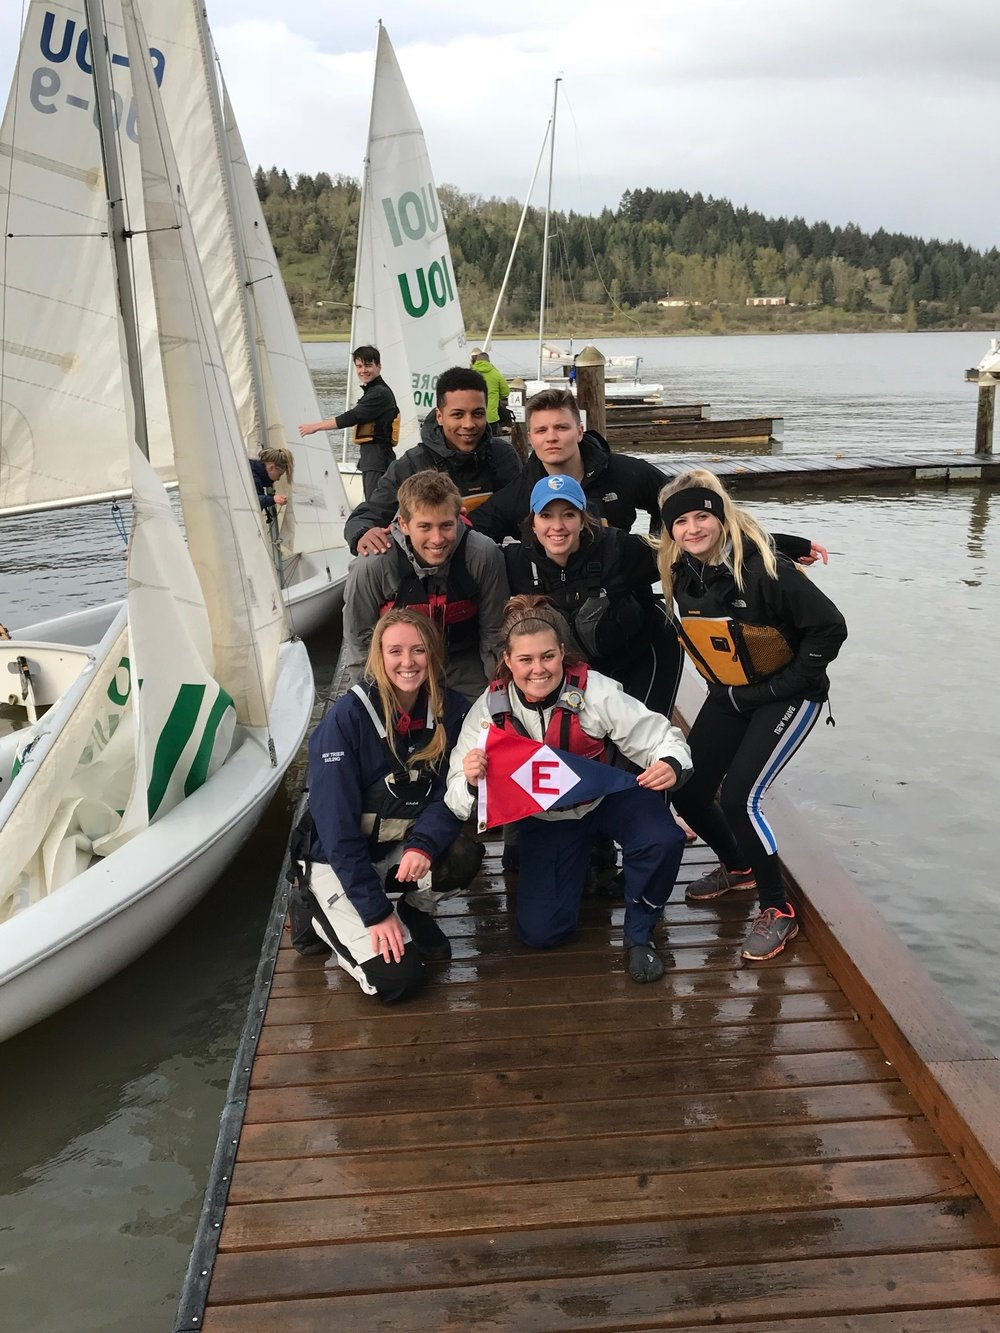 The UO Sailing Team takes a break from practice to show the EYC colors. Go Ducks!